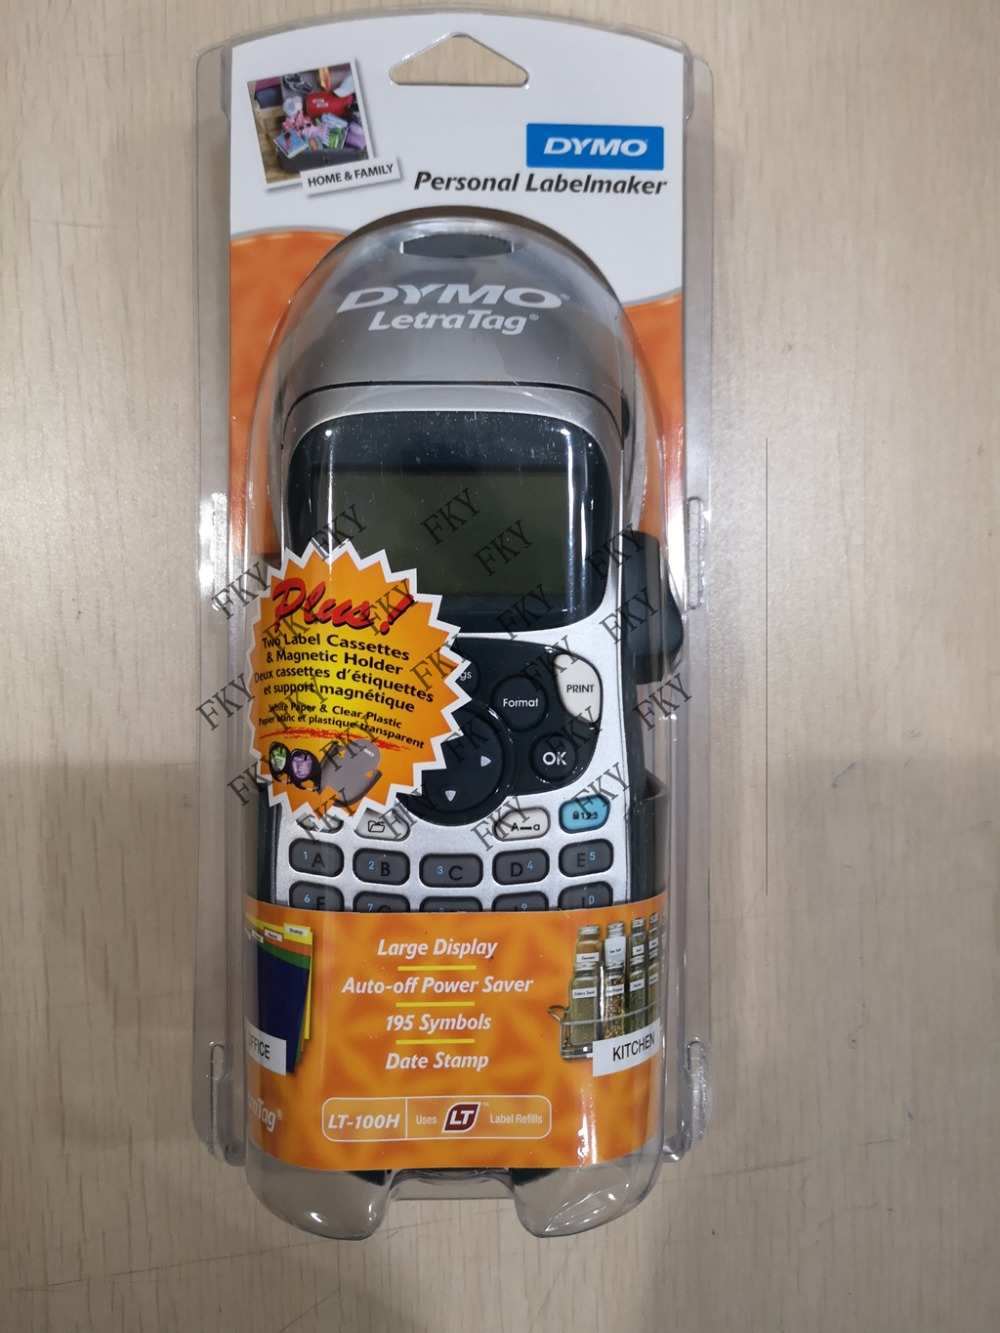 New LetraTag Plus for Dymo LT 100H 21455Handheld Label Printer Letratag office or home handheld portable